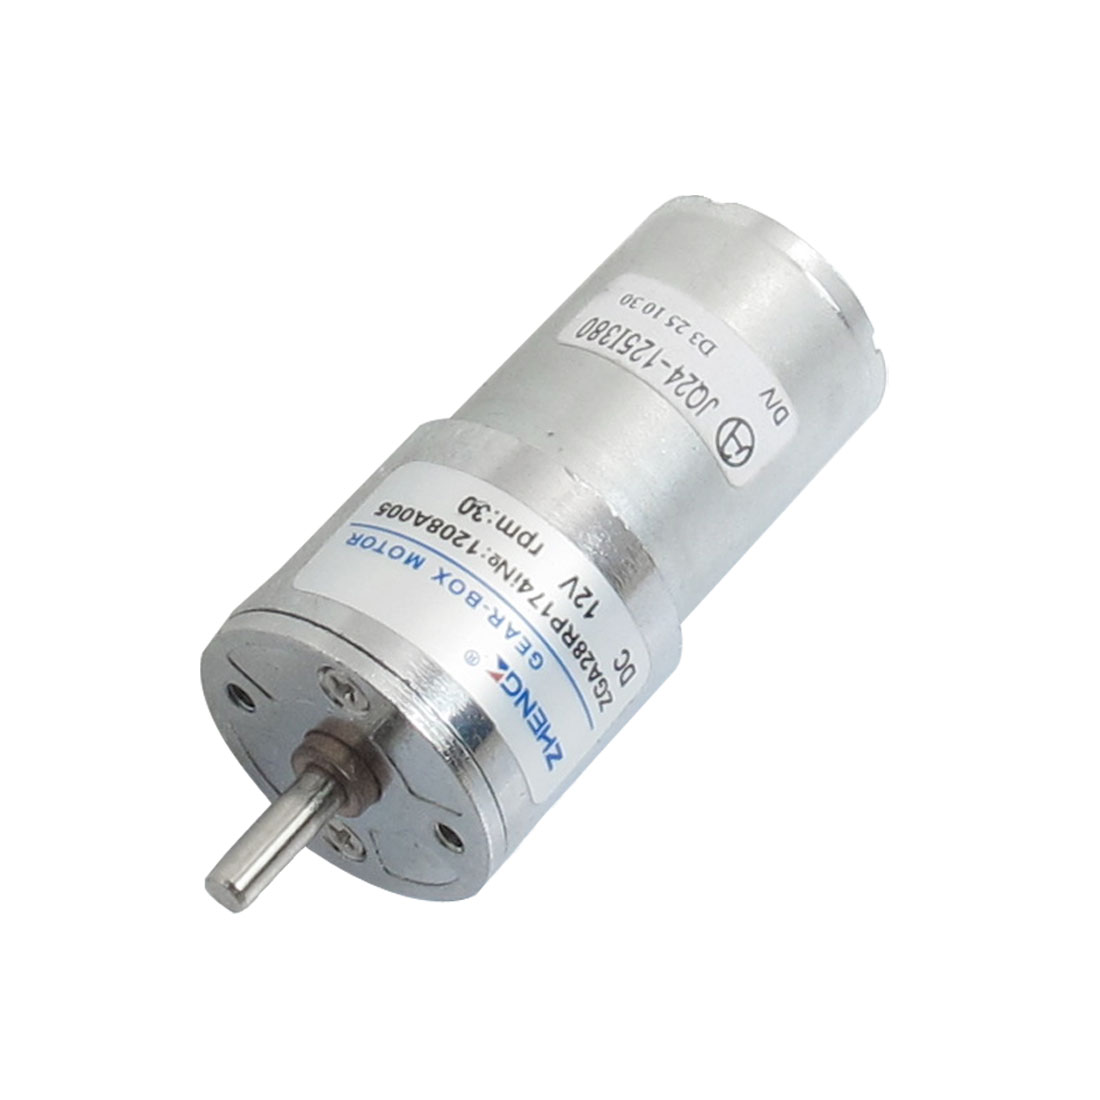 28mm Body Diameter Two Terminals Power Oven Geared Motor 12VDC 30RPM